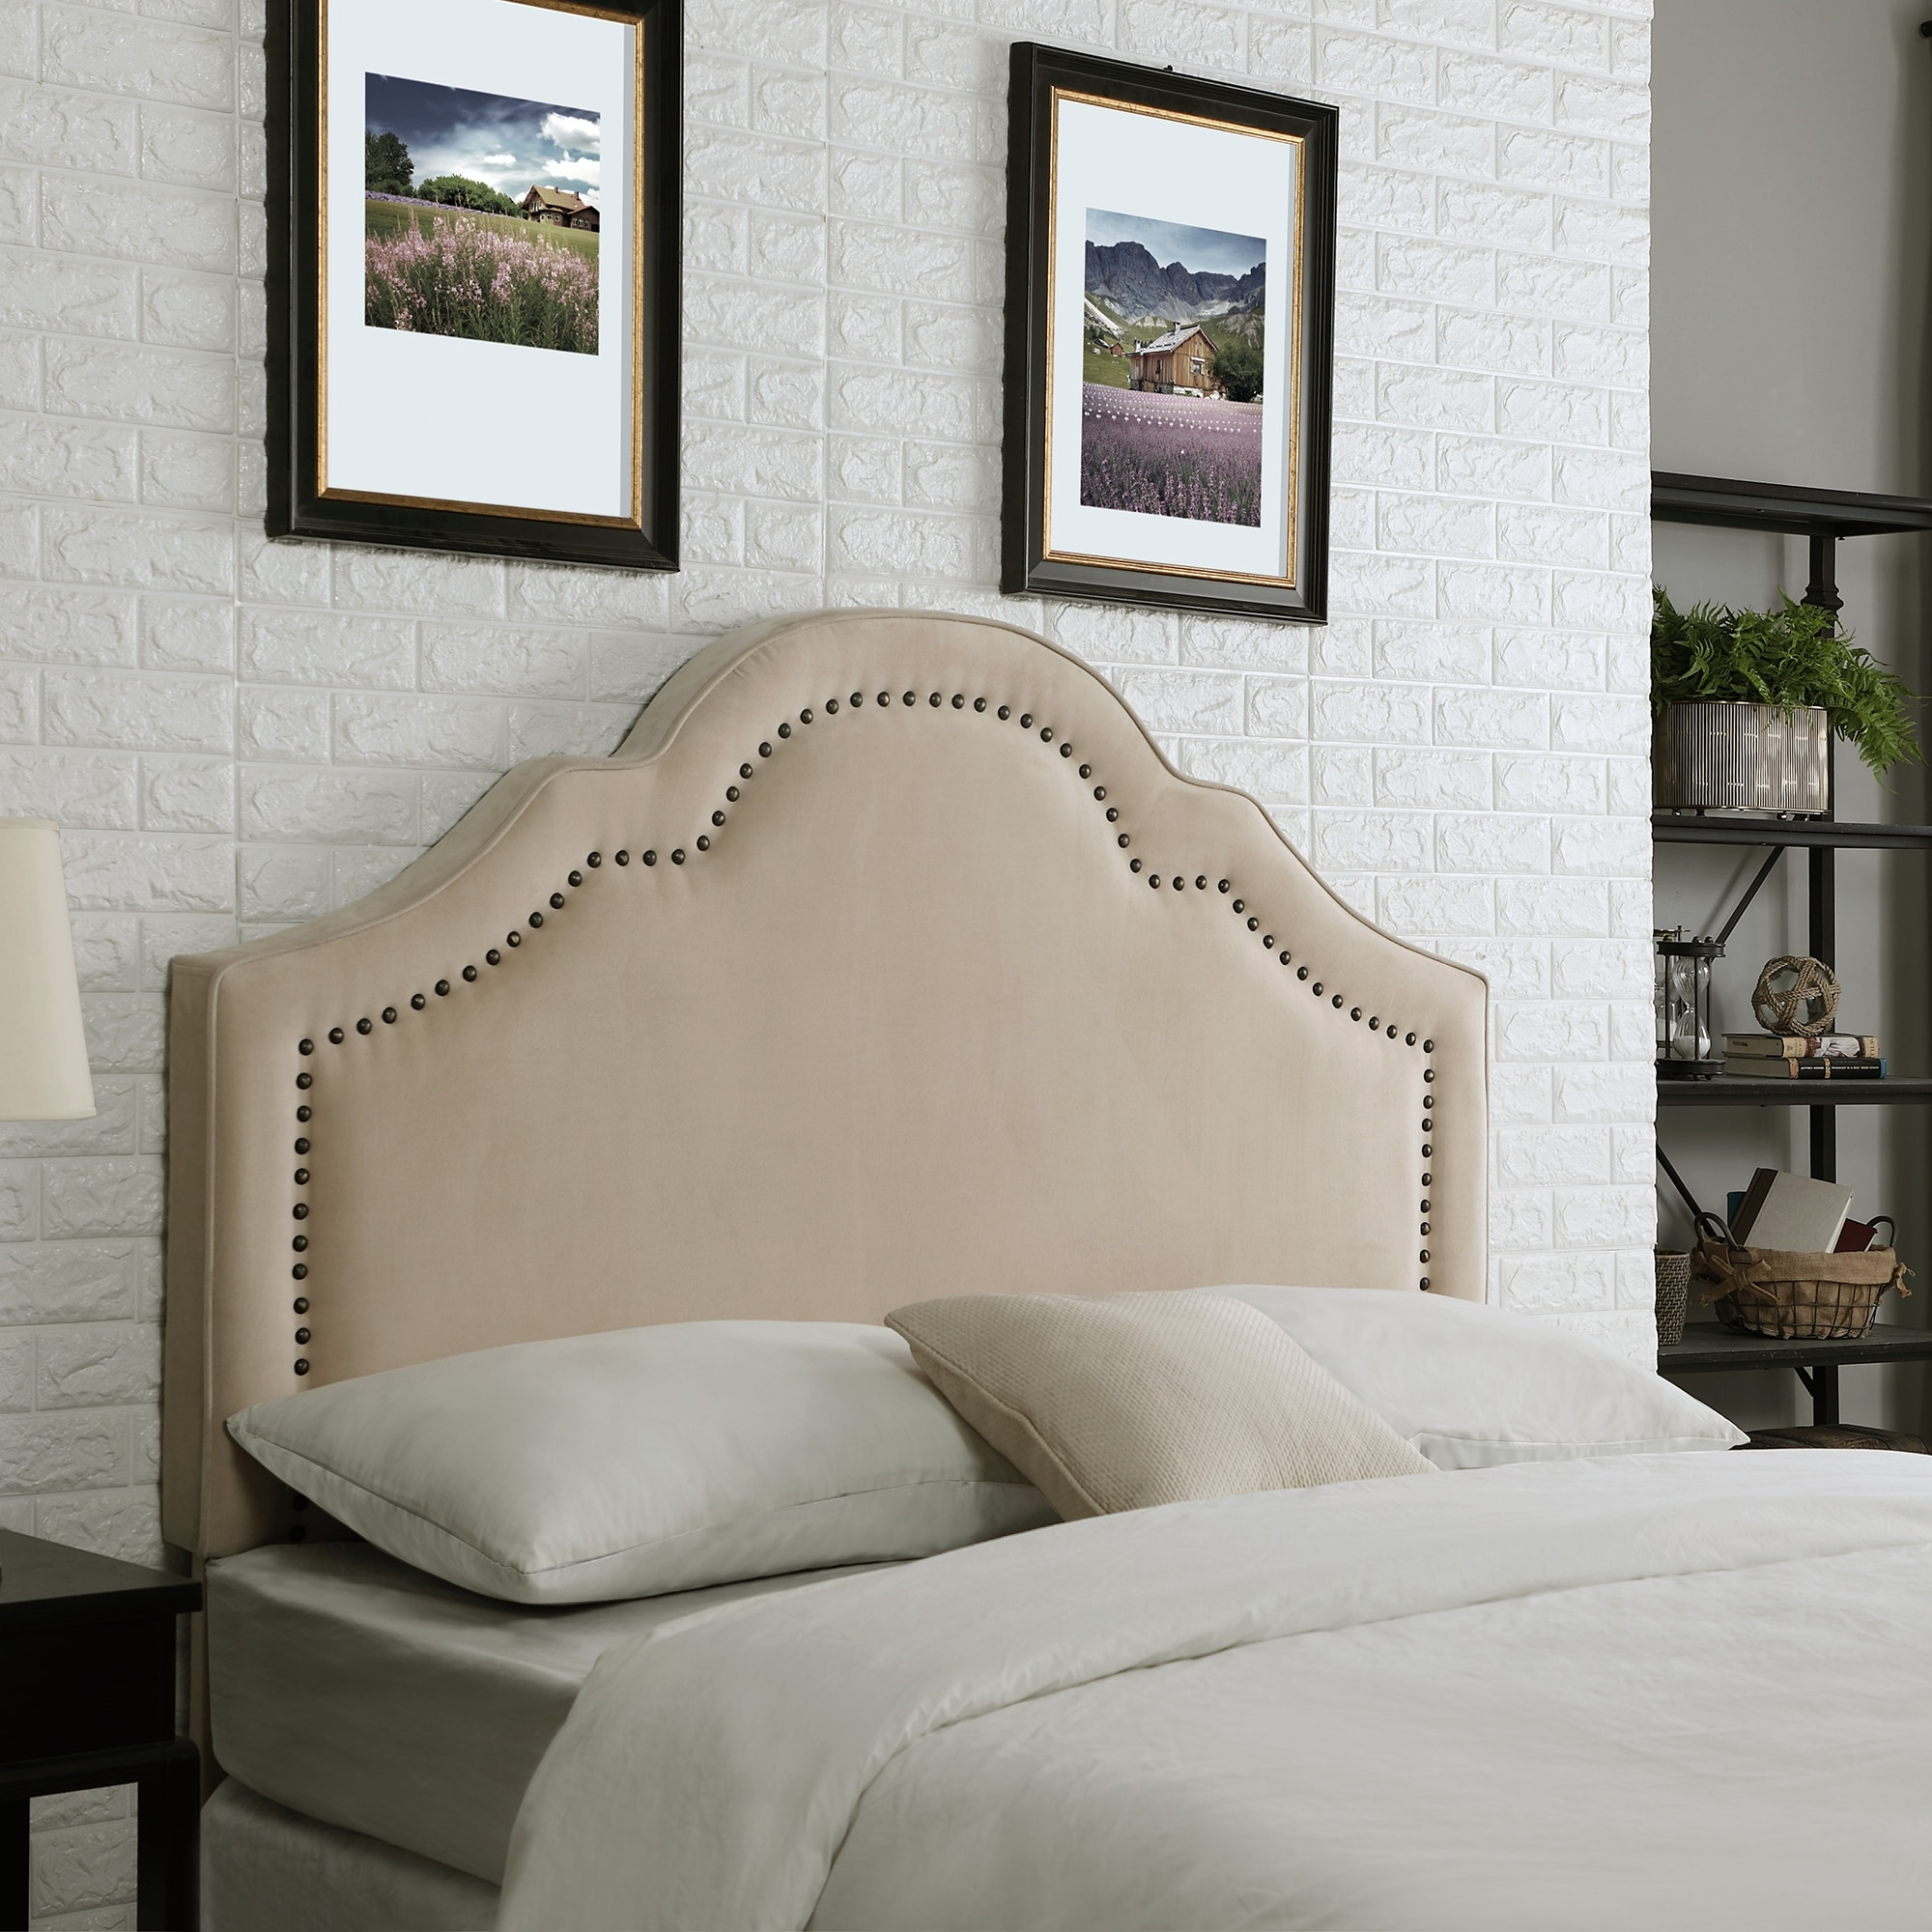 Firstime Co Verona Beige Velvet Headboard Full Queen Ivory Upholstered Fabric American Crafted 64 X 4 X 60 In Overstock 25640267